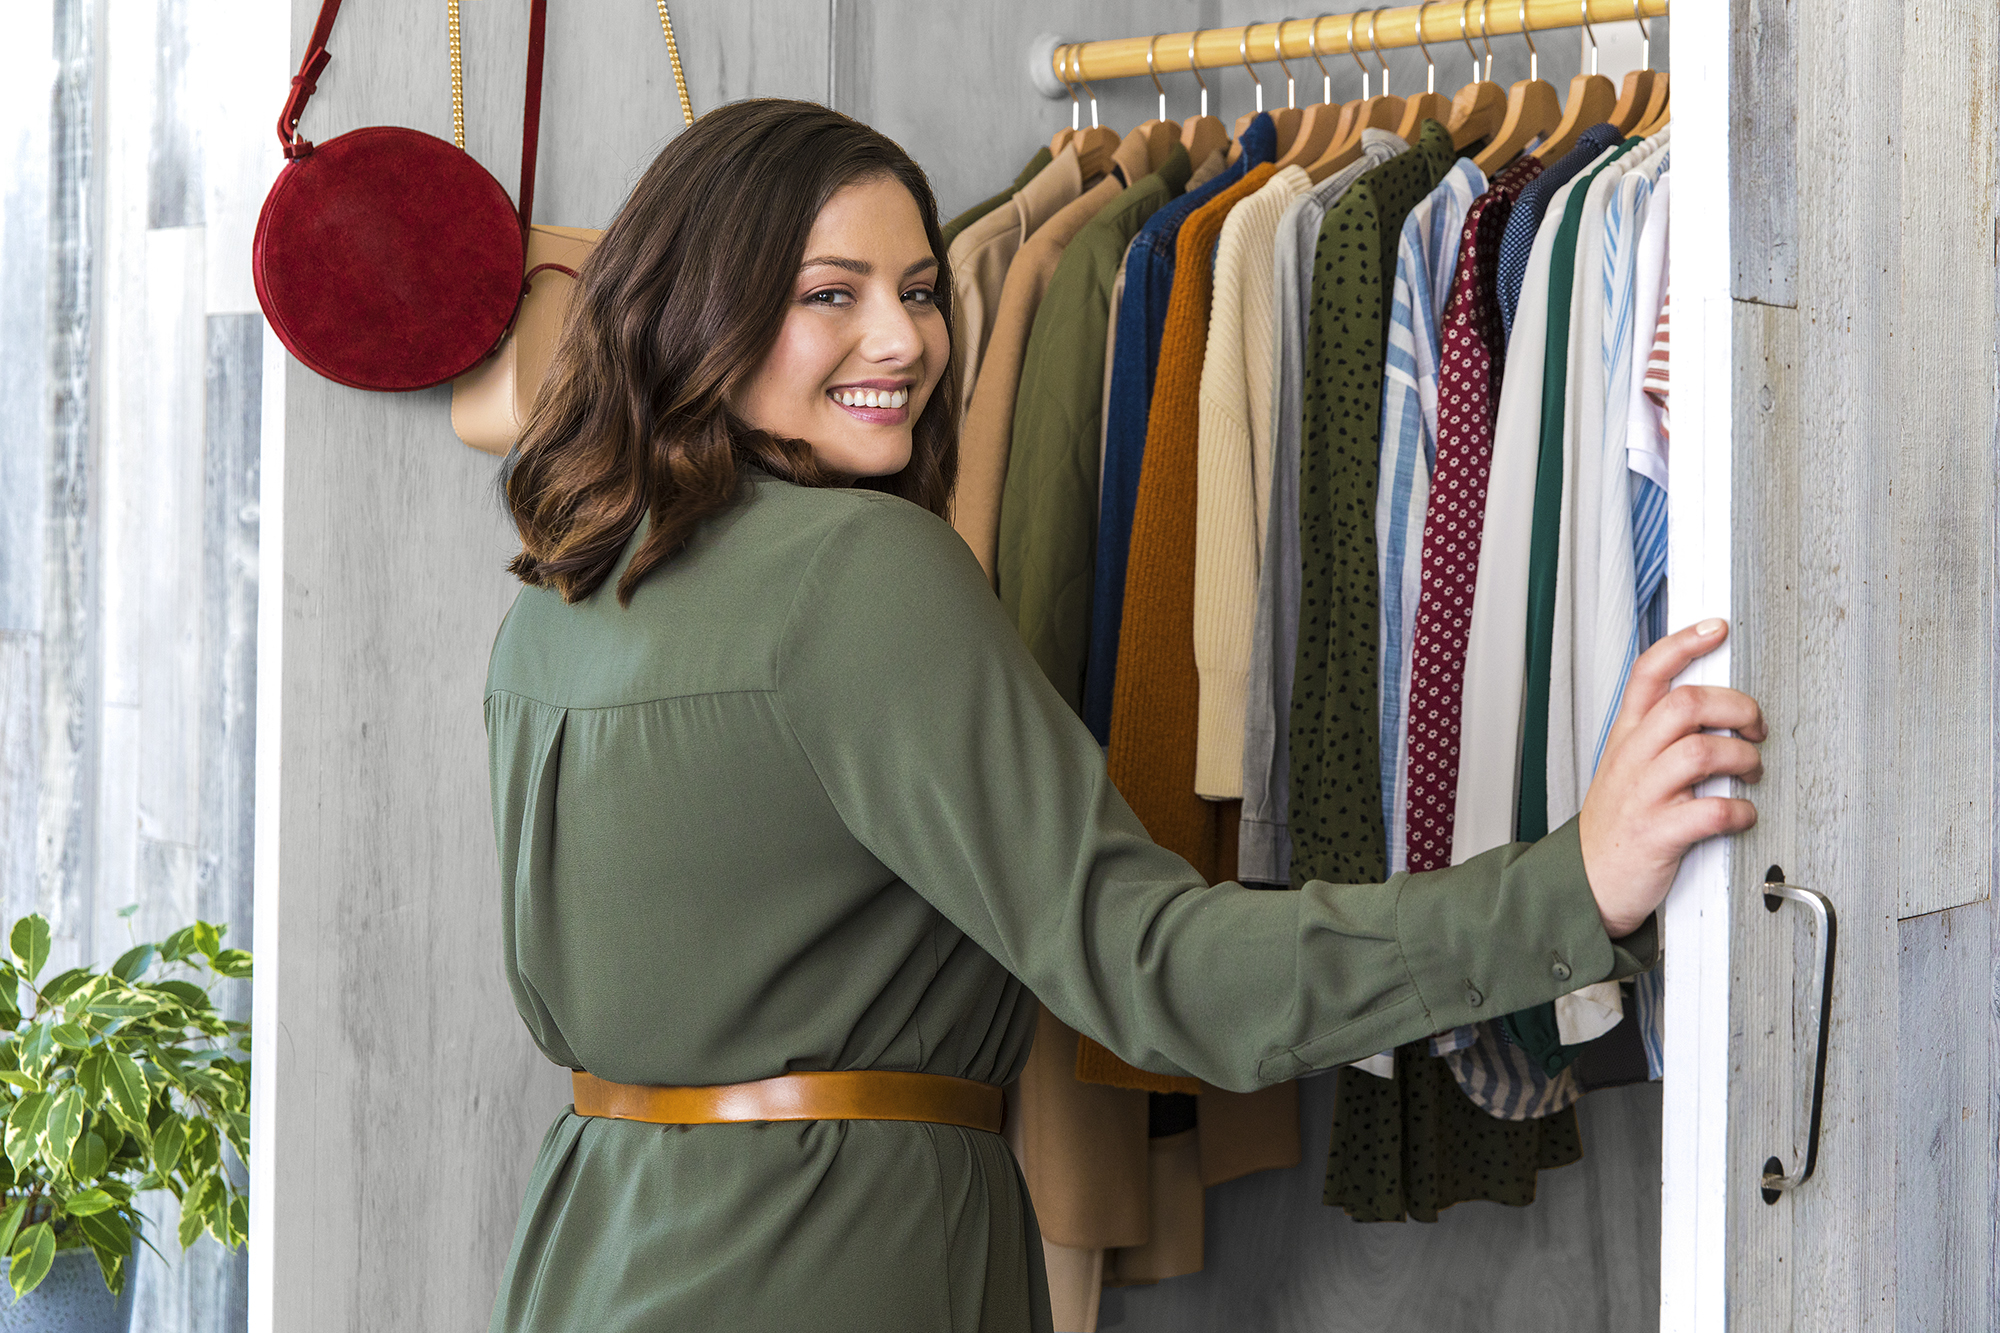 20190130-vf_07-Marcelle-Fully-Clothed-In-Closet_0855-Edit-Edit-Edit.jpg